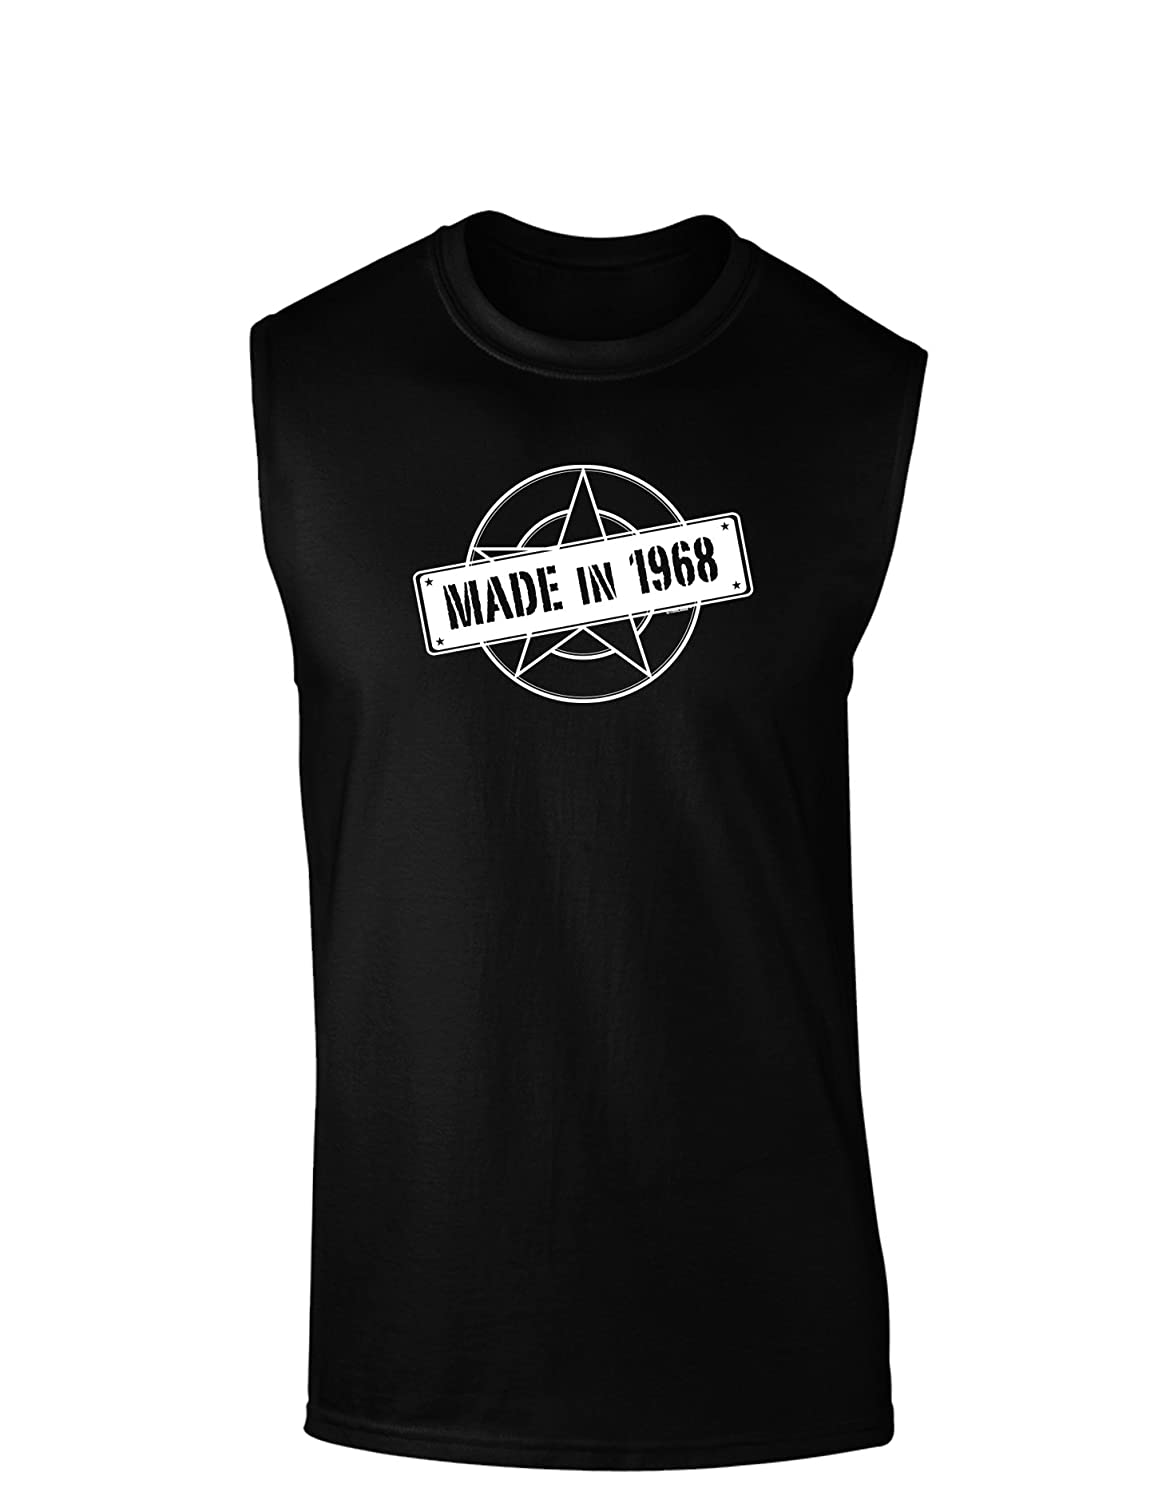 Made In 1968 Dark Muscle Shirt